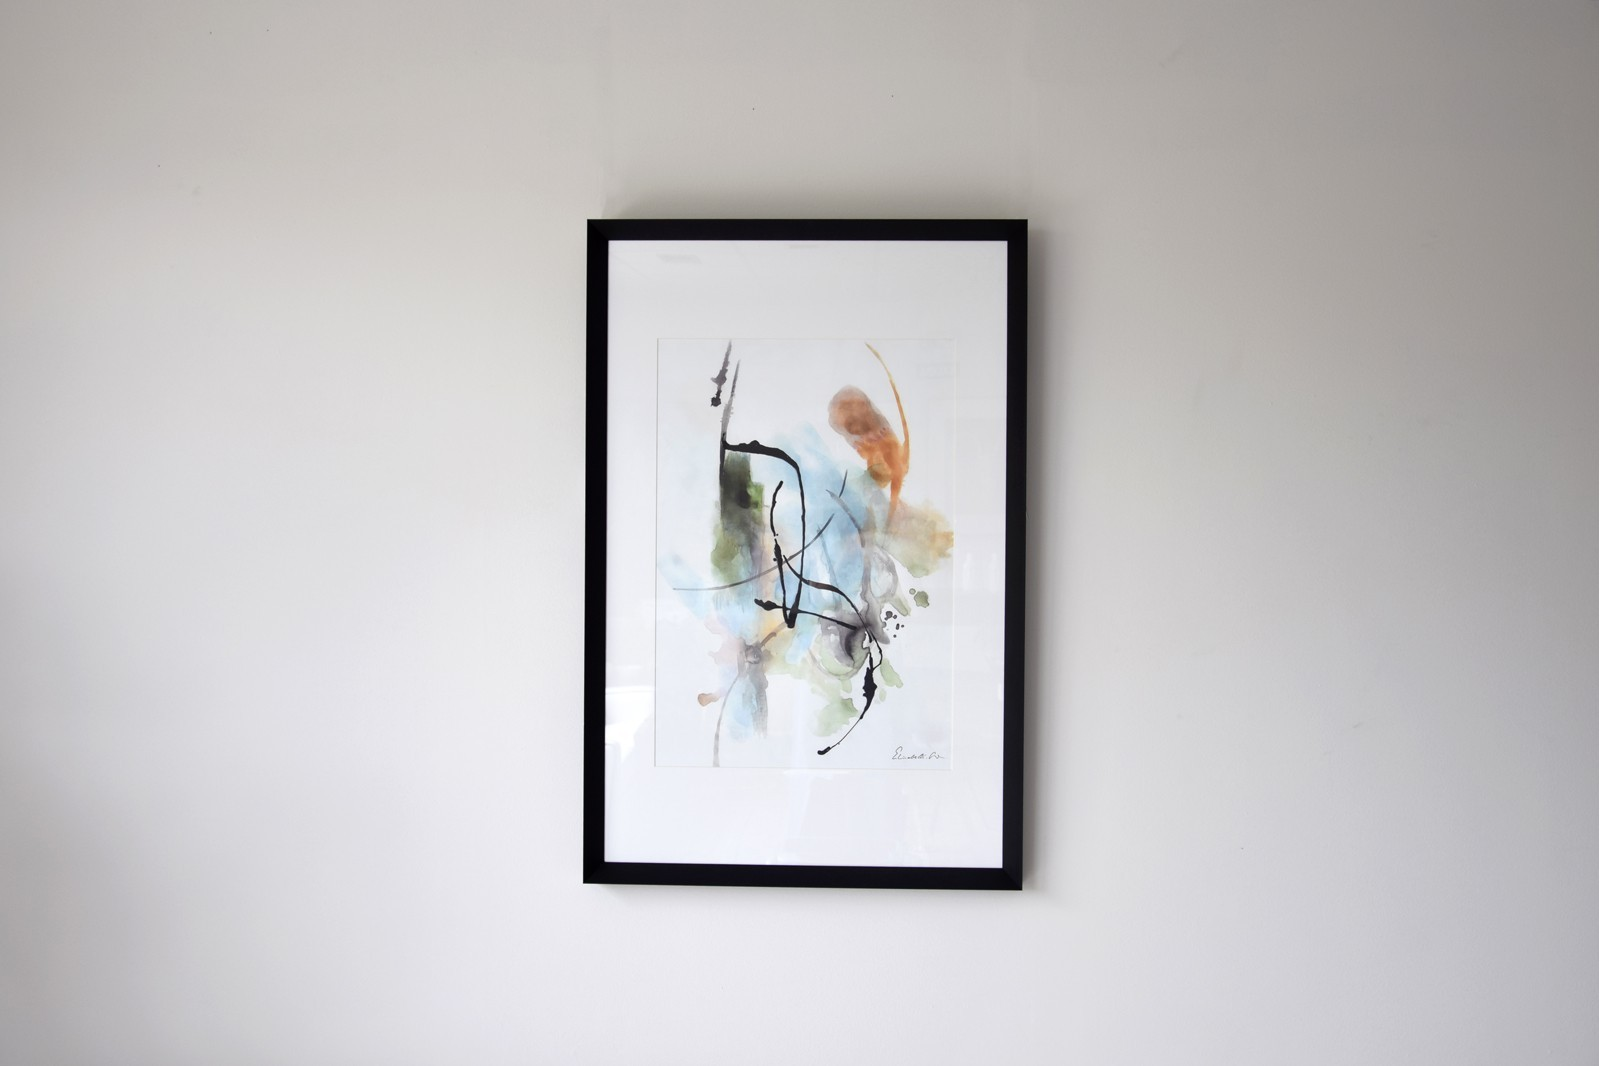 ABSTRACT PAINTING TRACES N.7. GLASS